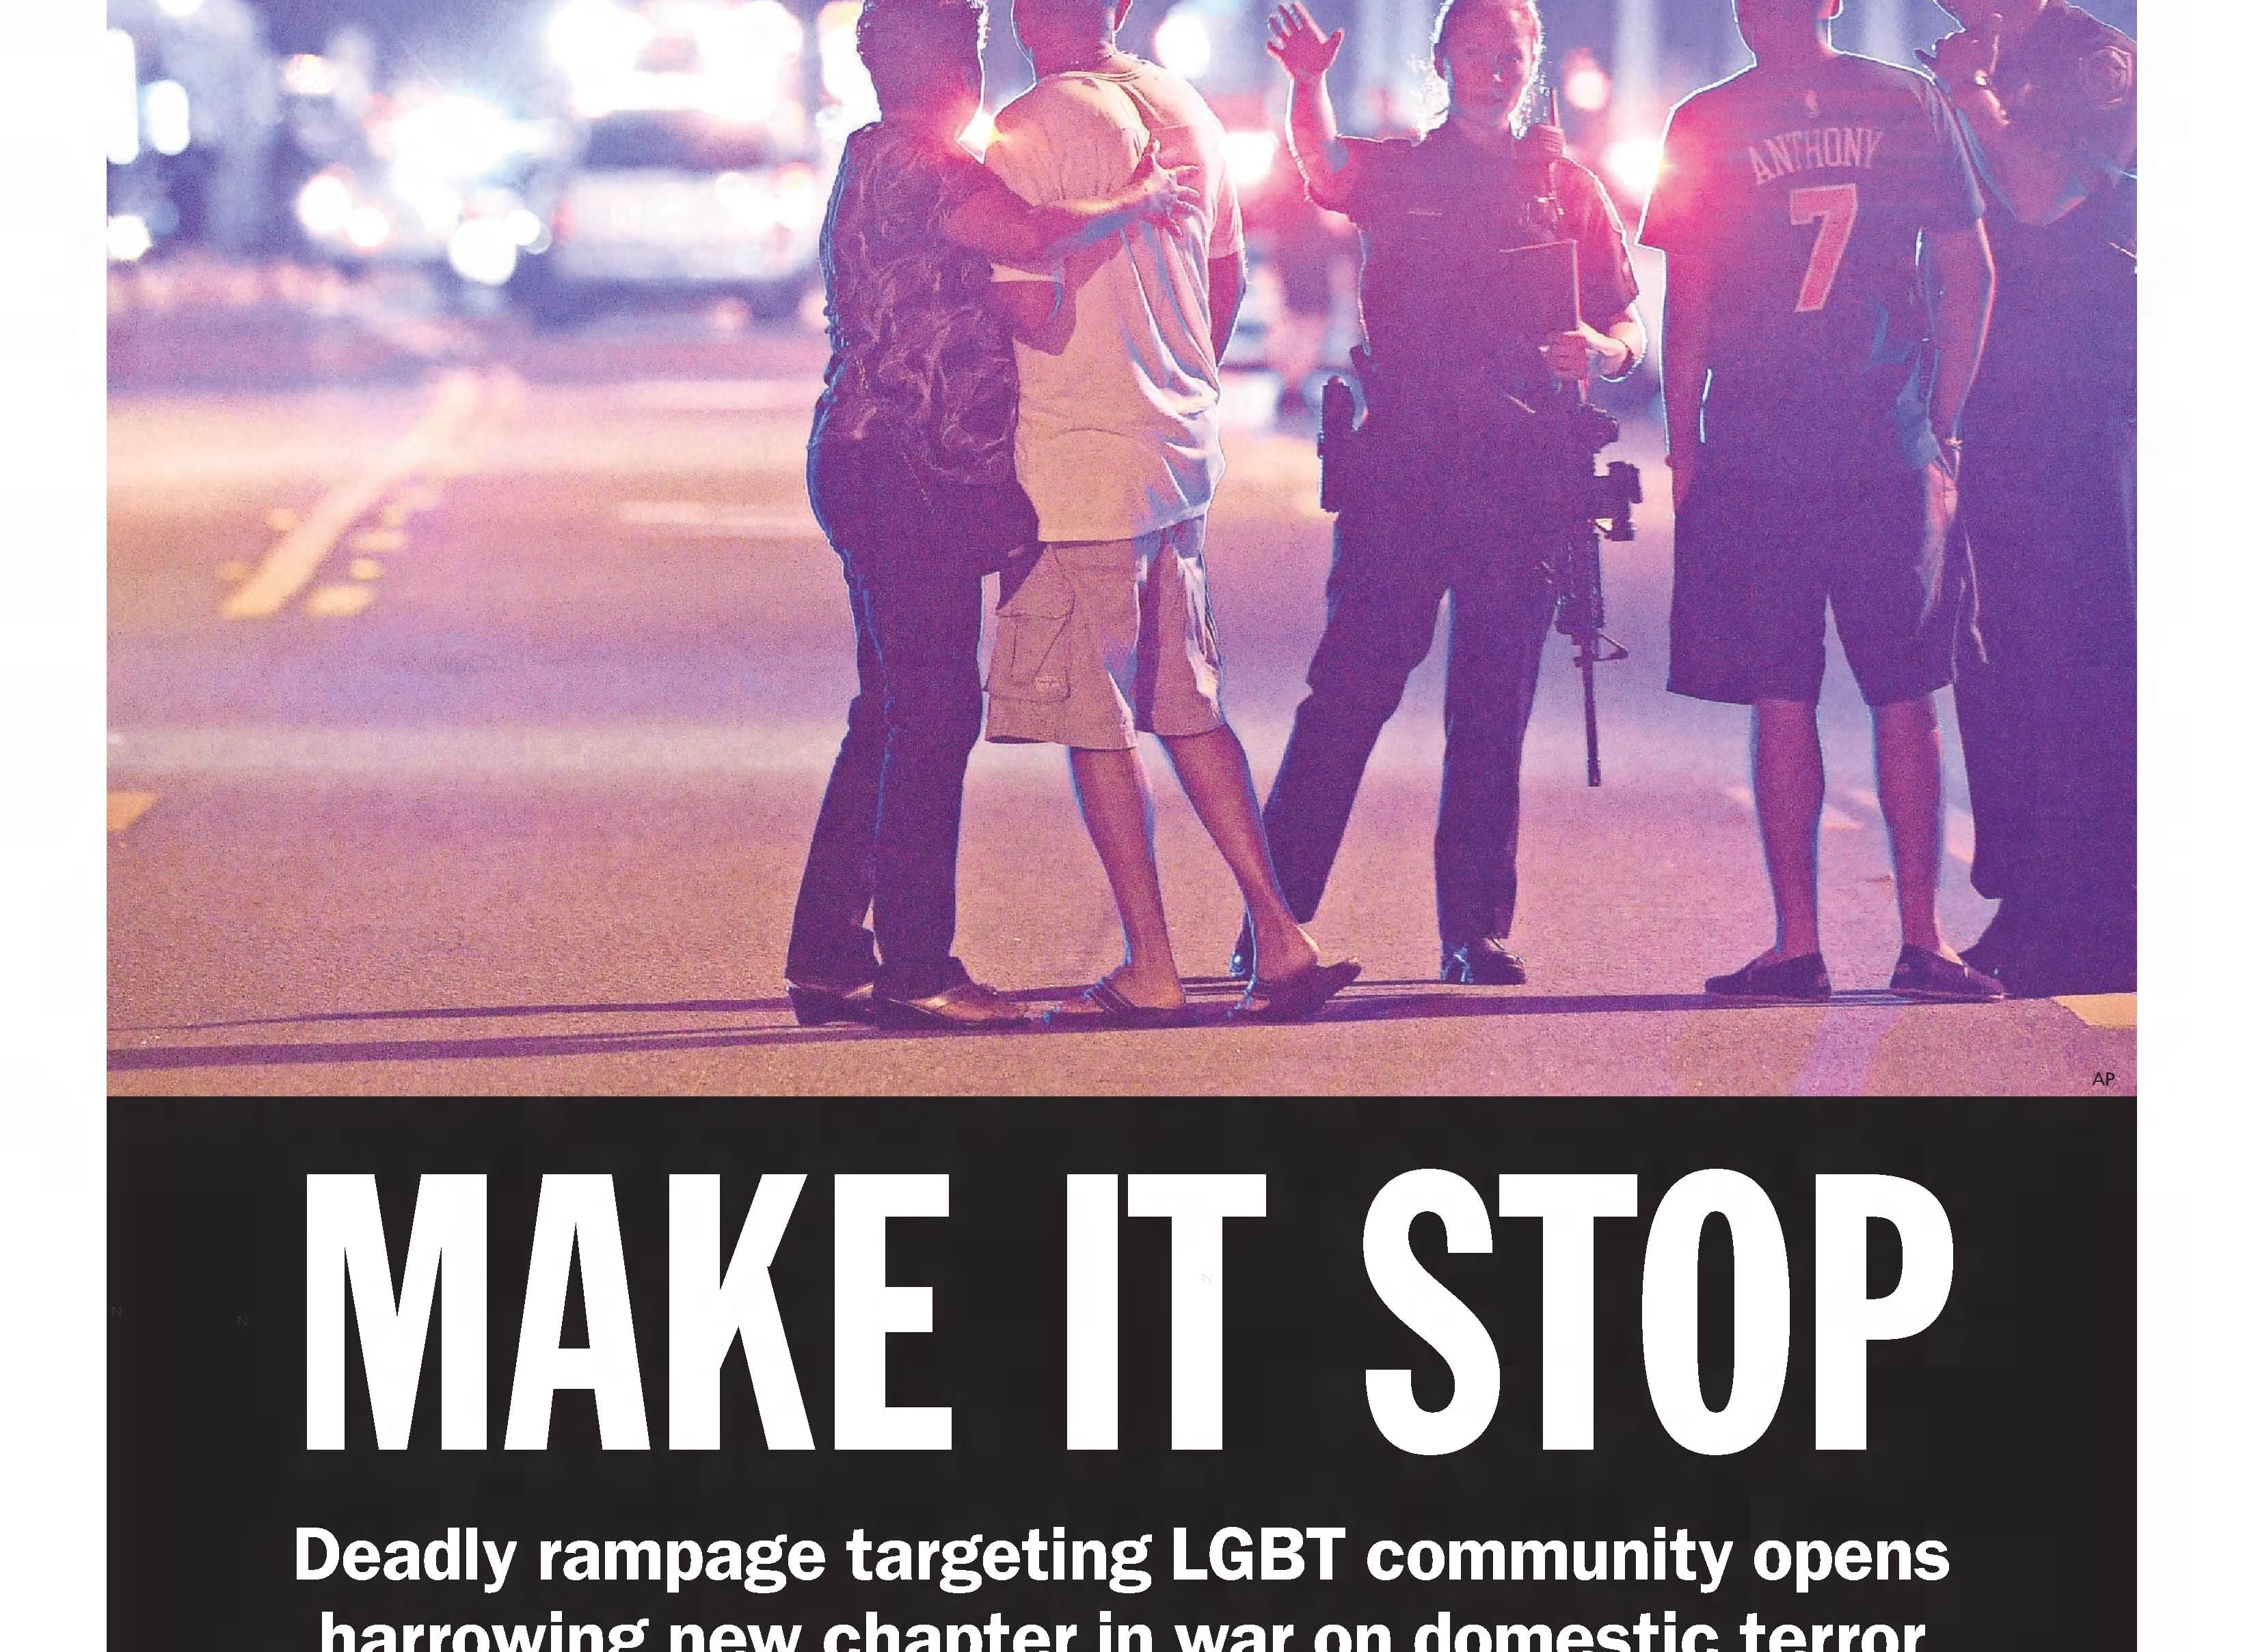 The deadliest mass shooting in American history - until the following year - takes place at a nightclub in Orlando, Florida, in this edition from Monday, June 13, 2016; 49 people are murdered and 53 others are wounded.